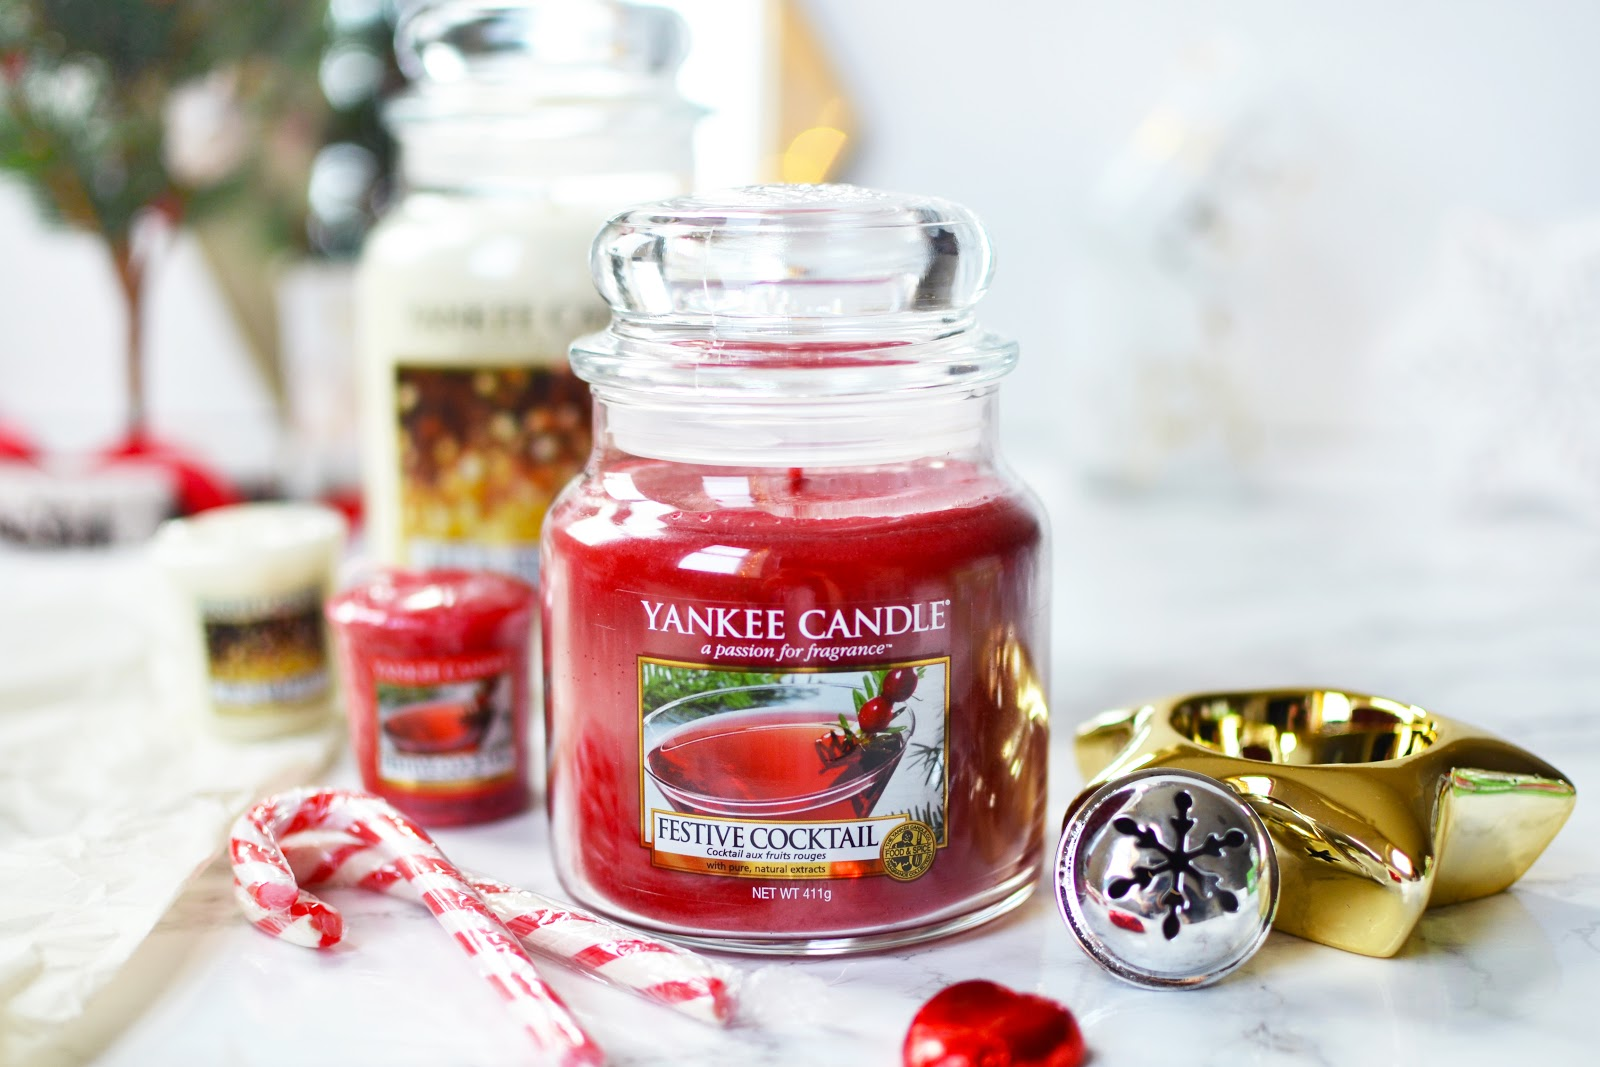 Yankee Candle Festive Cocktail